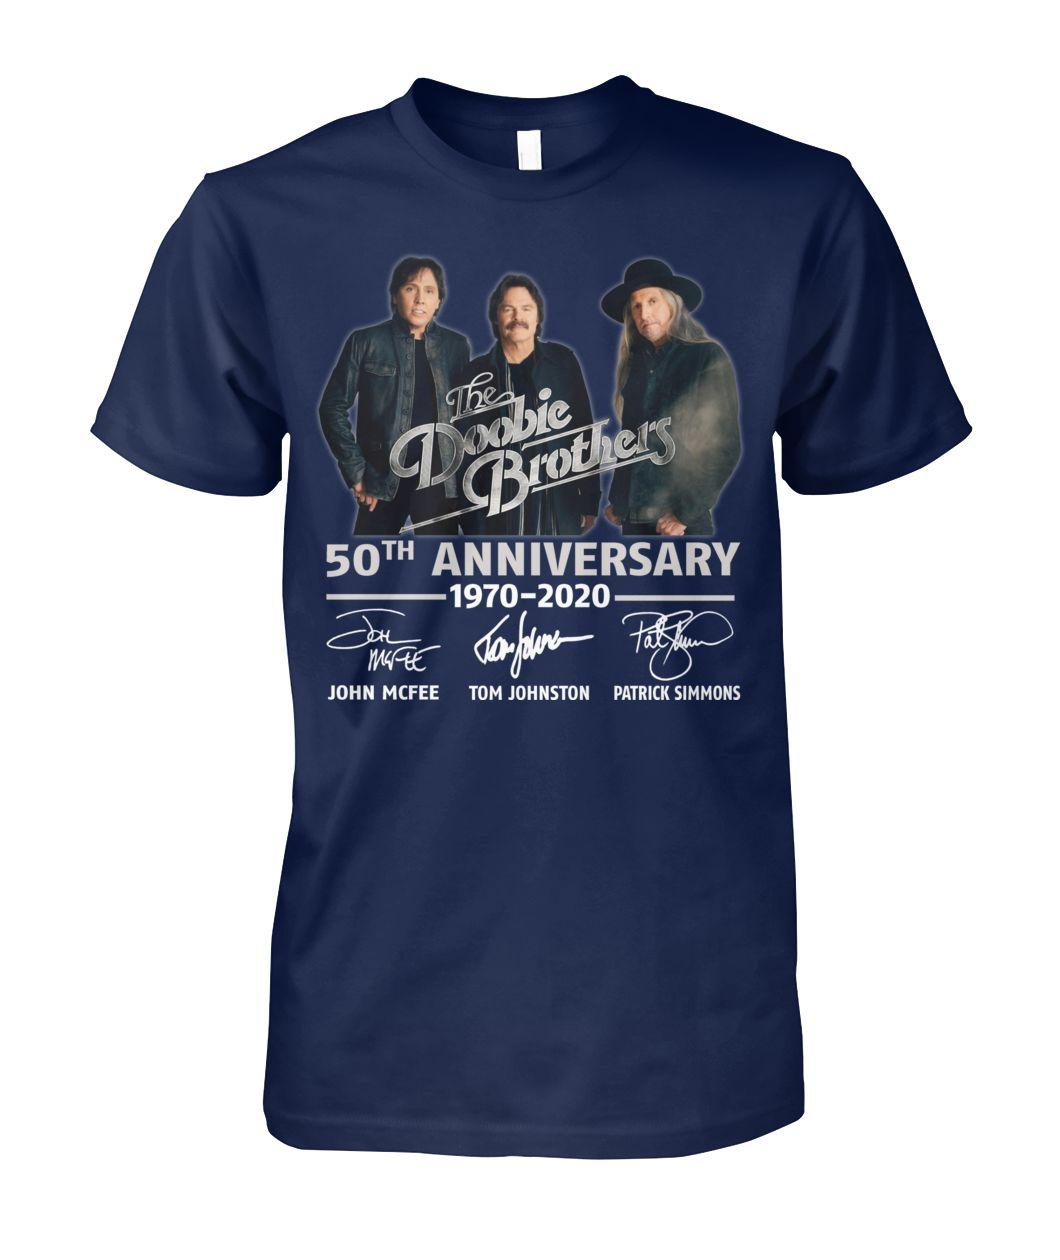 The Doobie Brothers 50th Anniversary Tour 2020 T-Shirt Size S-5XL Limited New